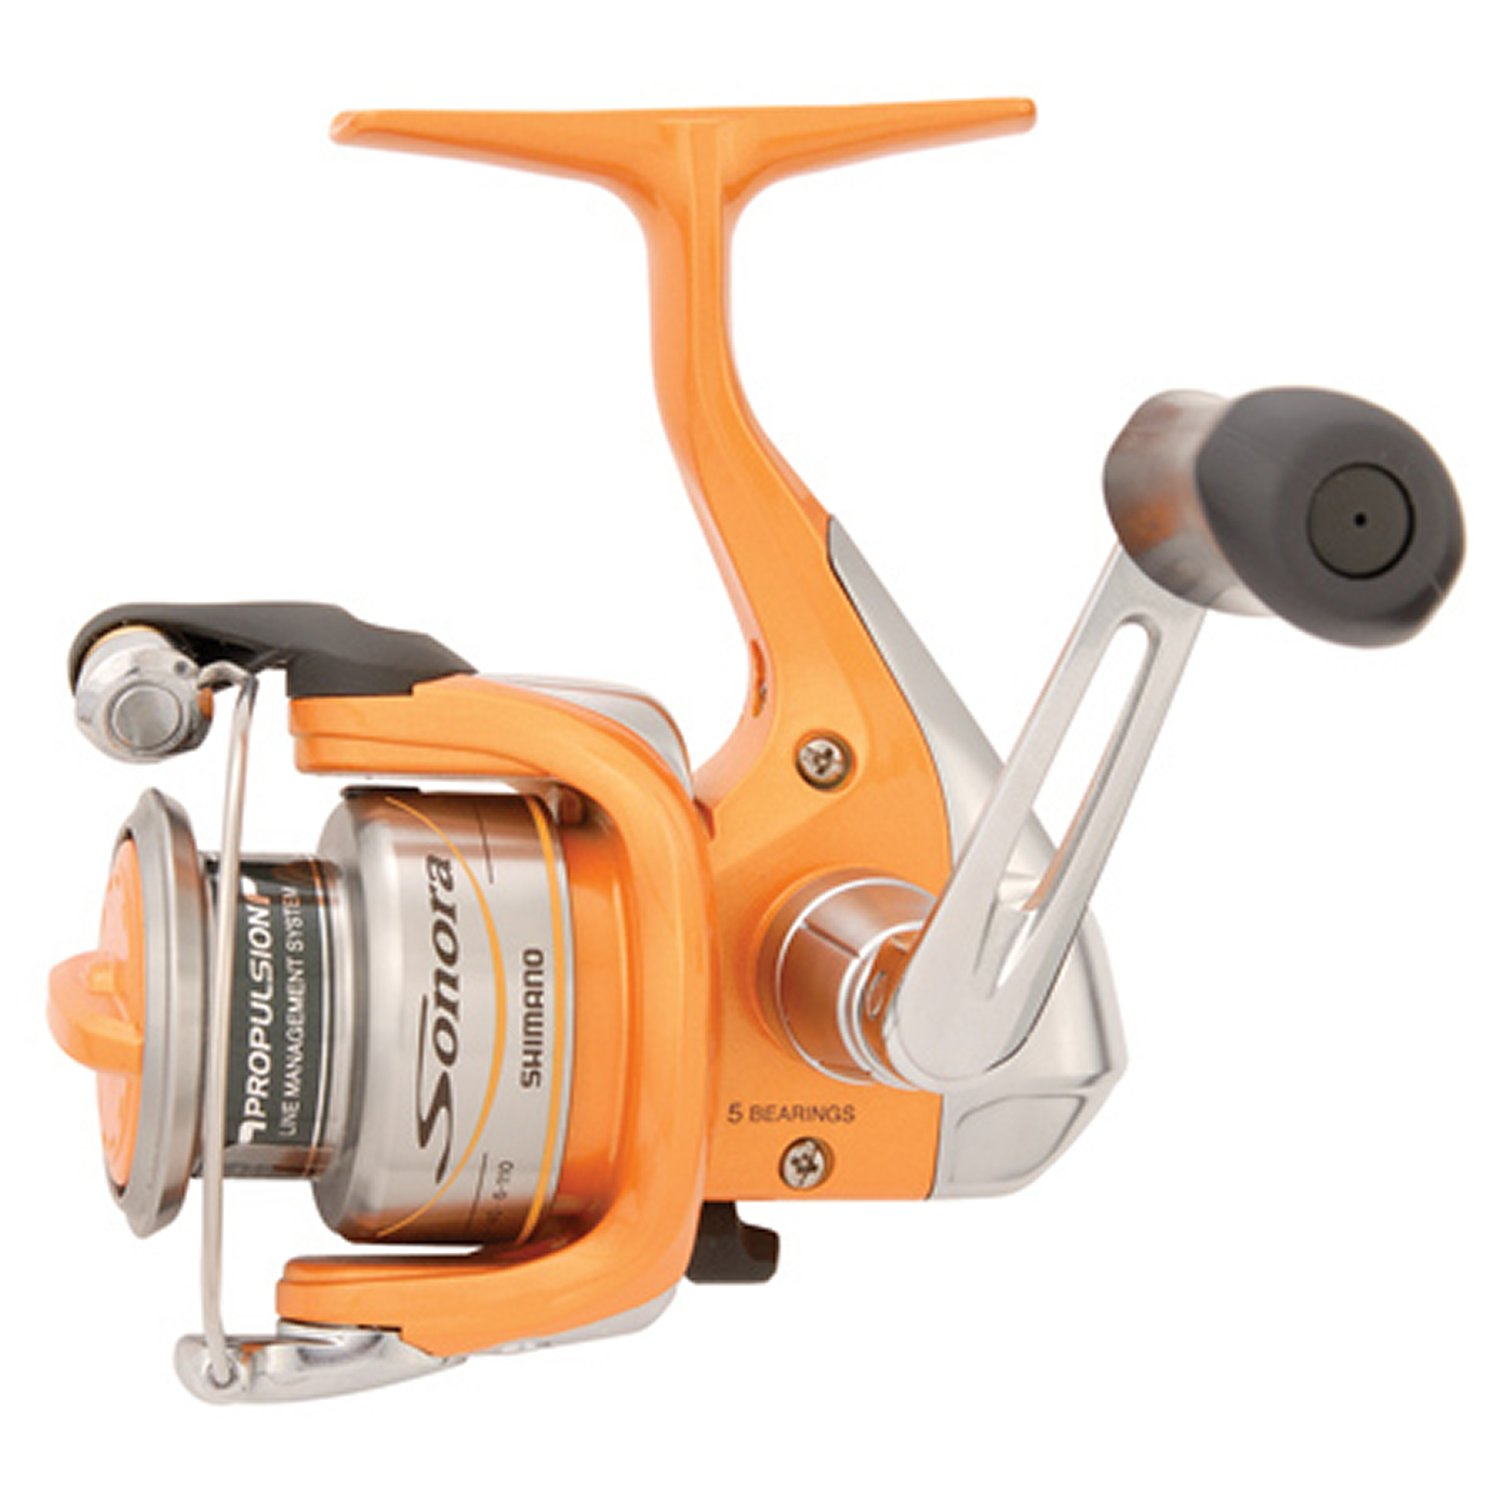 Shimano Sonora FB Spinning Reel 5.7 1 Medium Heavy, 10 Pounds 200 Yards